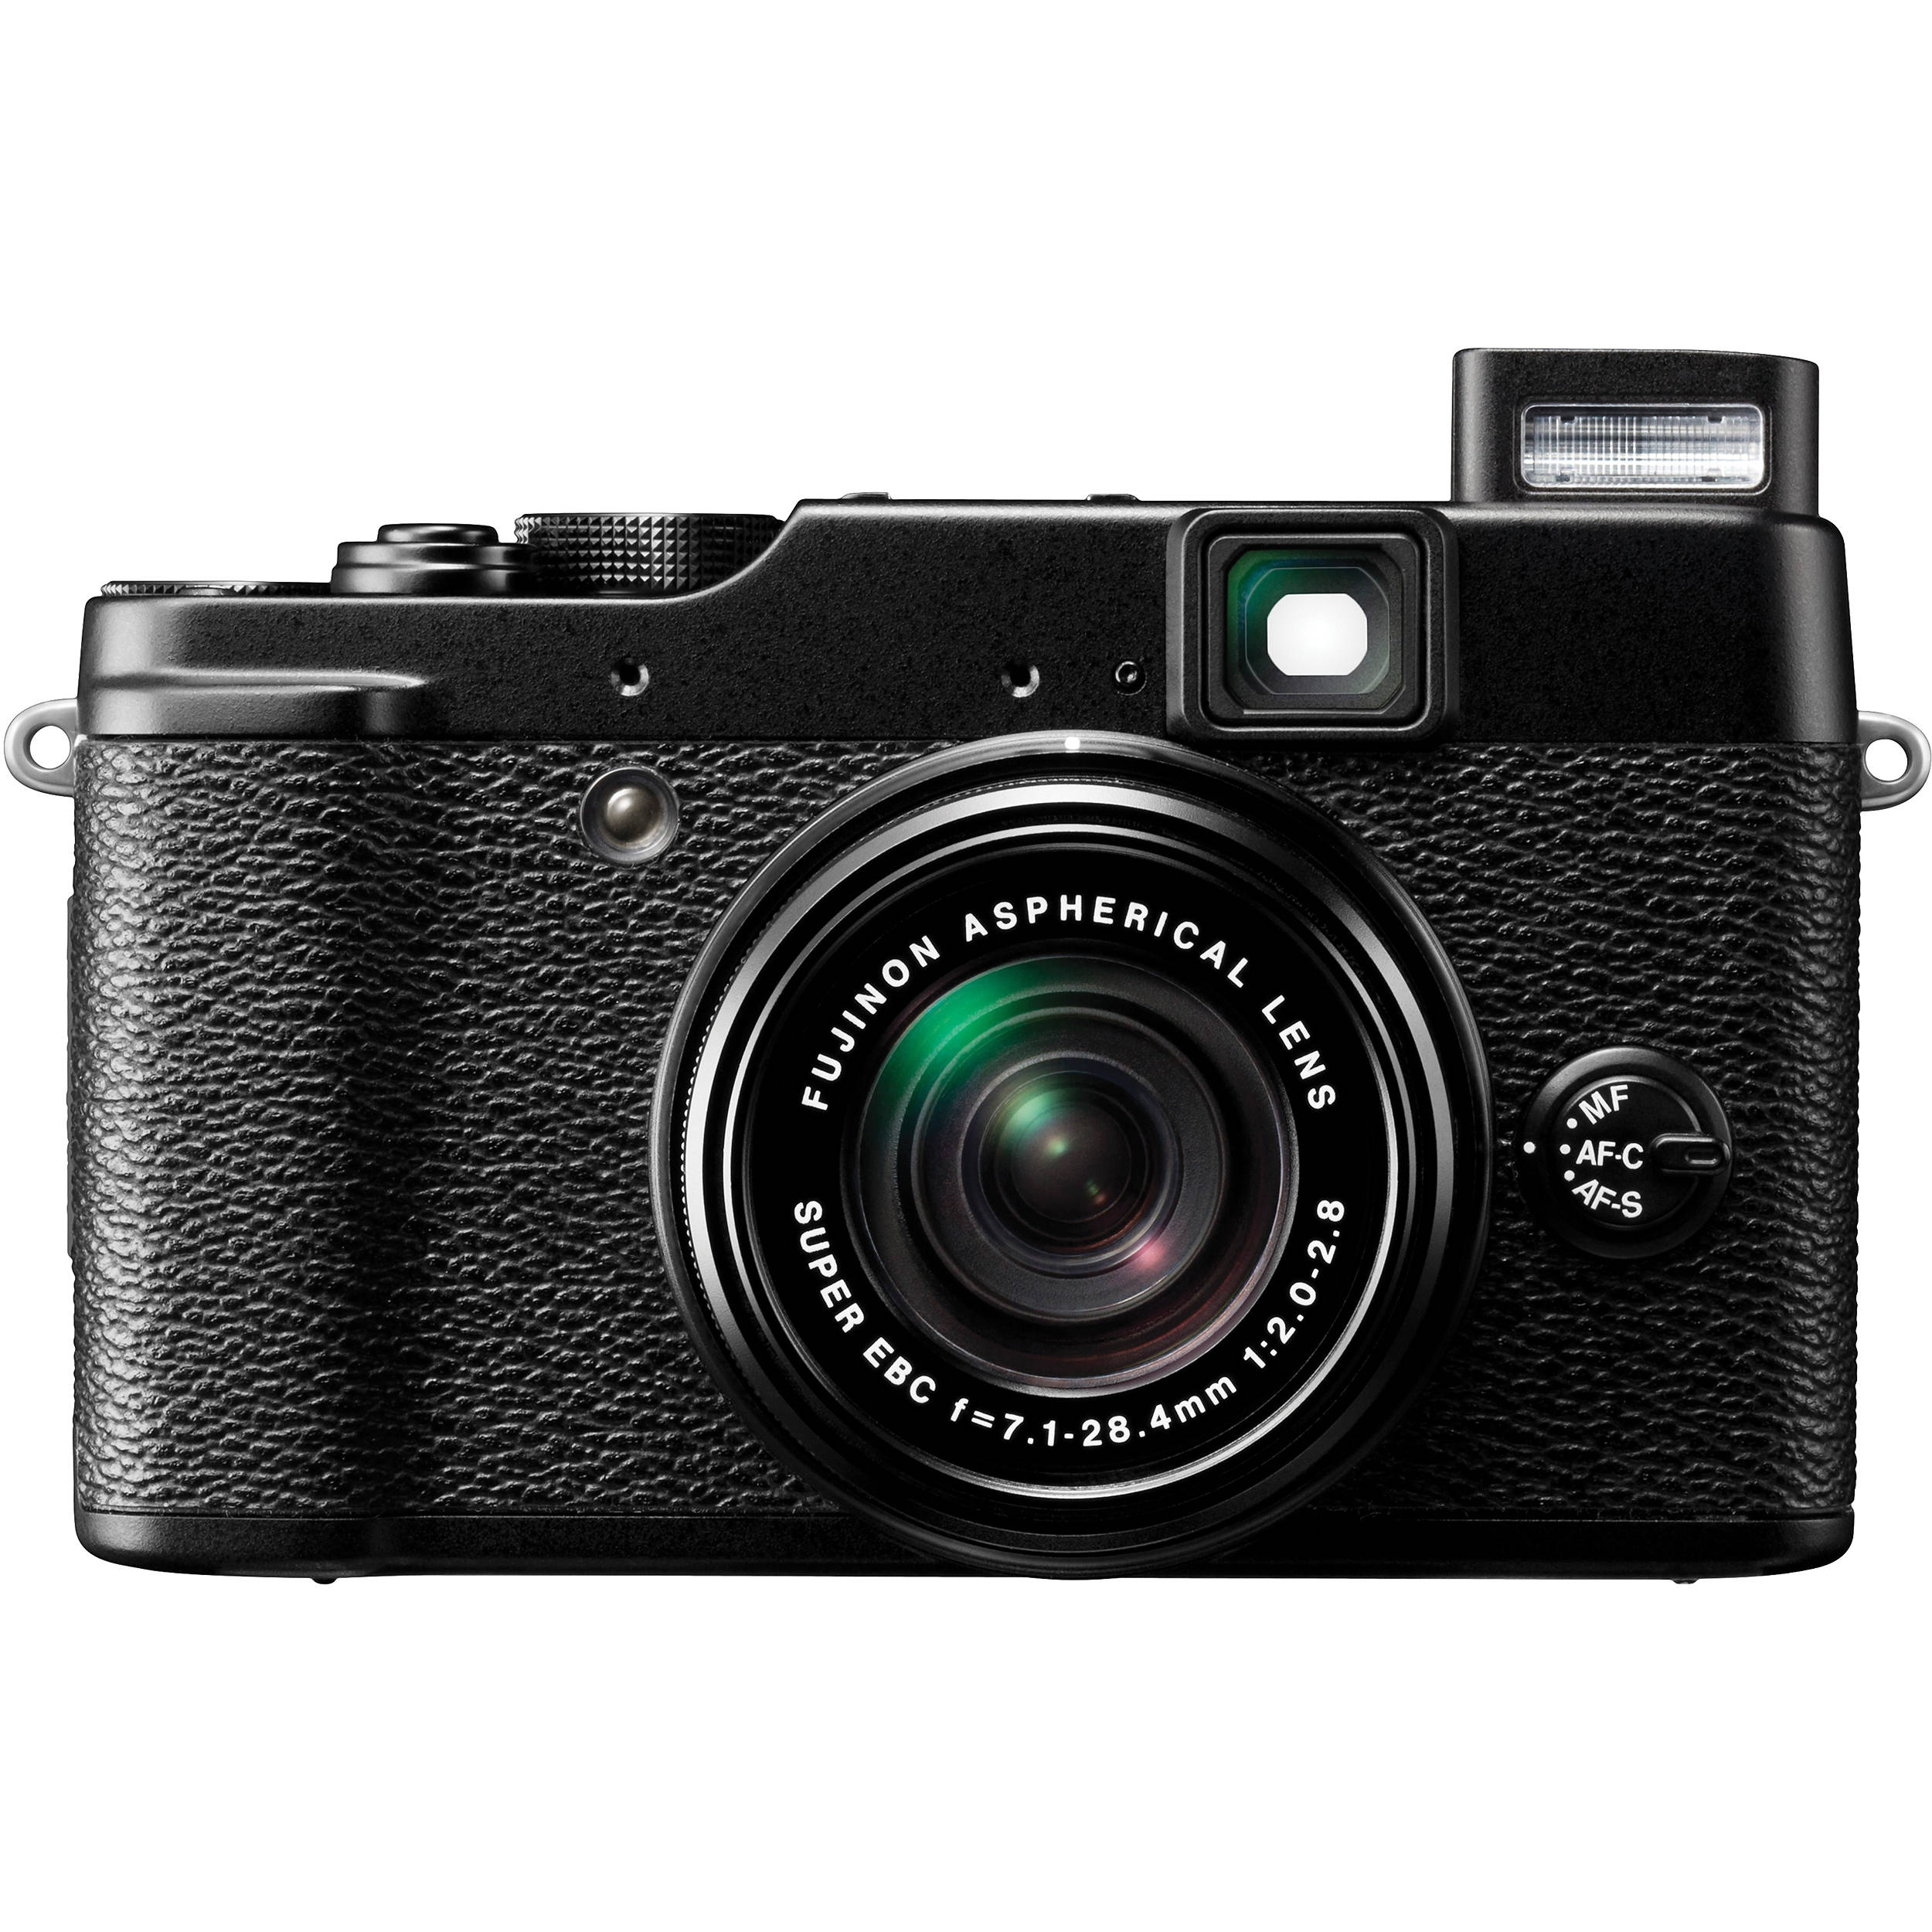 fujifilm x10 digital camera black 16190089 b h photo video rh bhphotovideo com fujifilm x10 user manual Fuji X20